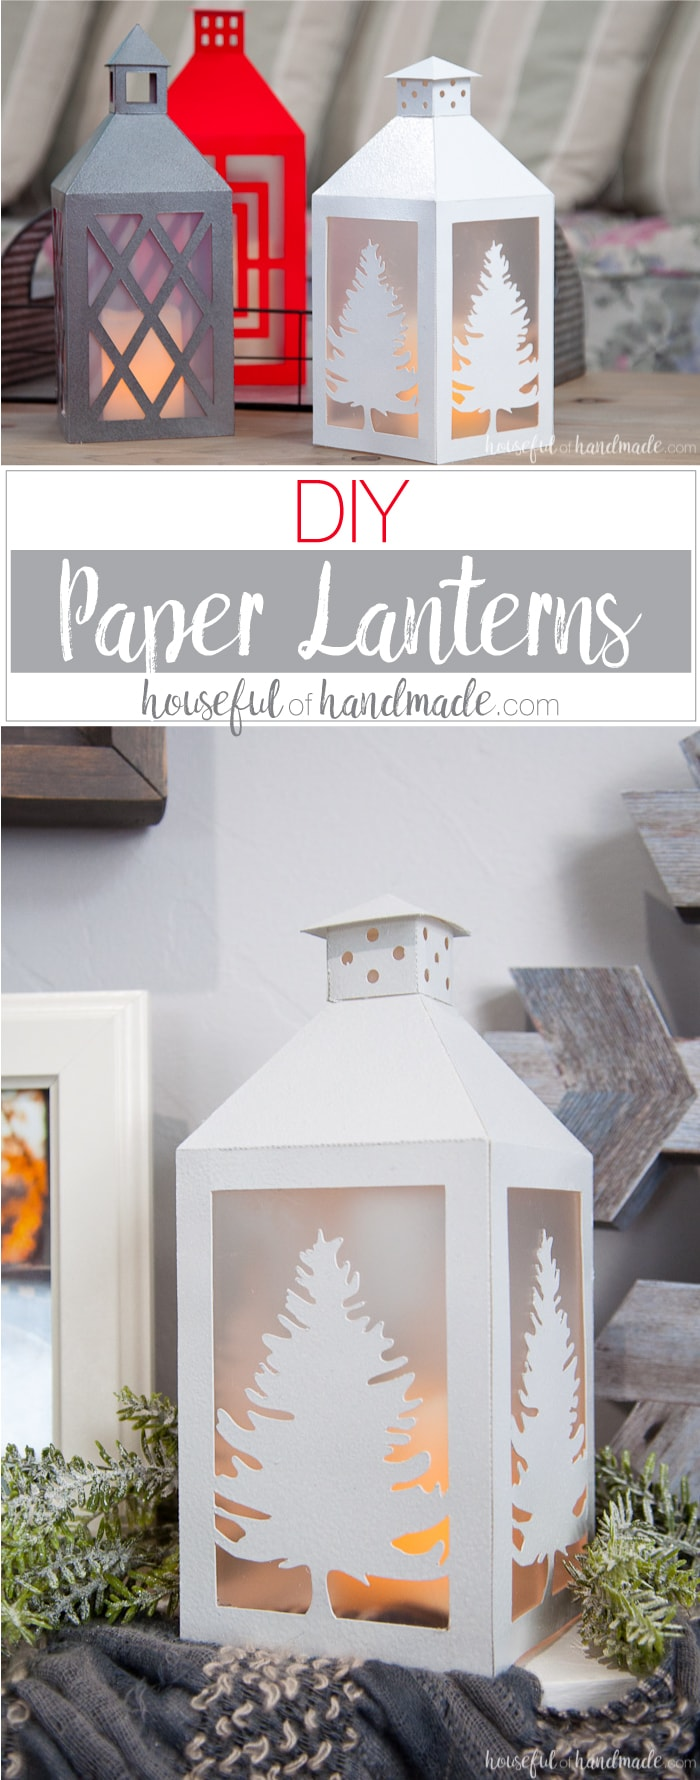 Make beautiful paper lanterns with these digital cut files. These paper lanterns decor are easy to make and no one will guess you made them out of paper! How to Make DIY Paper Lanterns Decor | Housefulofhandmade.com | #Papercrafts #Silhouette #cricut #DIYDecor #Budgetdecor